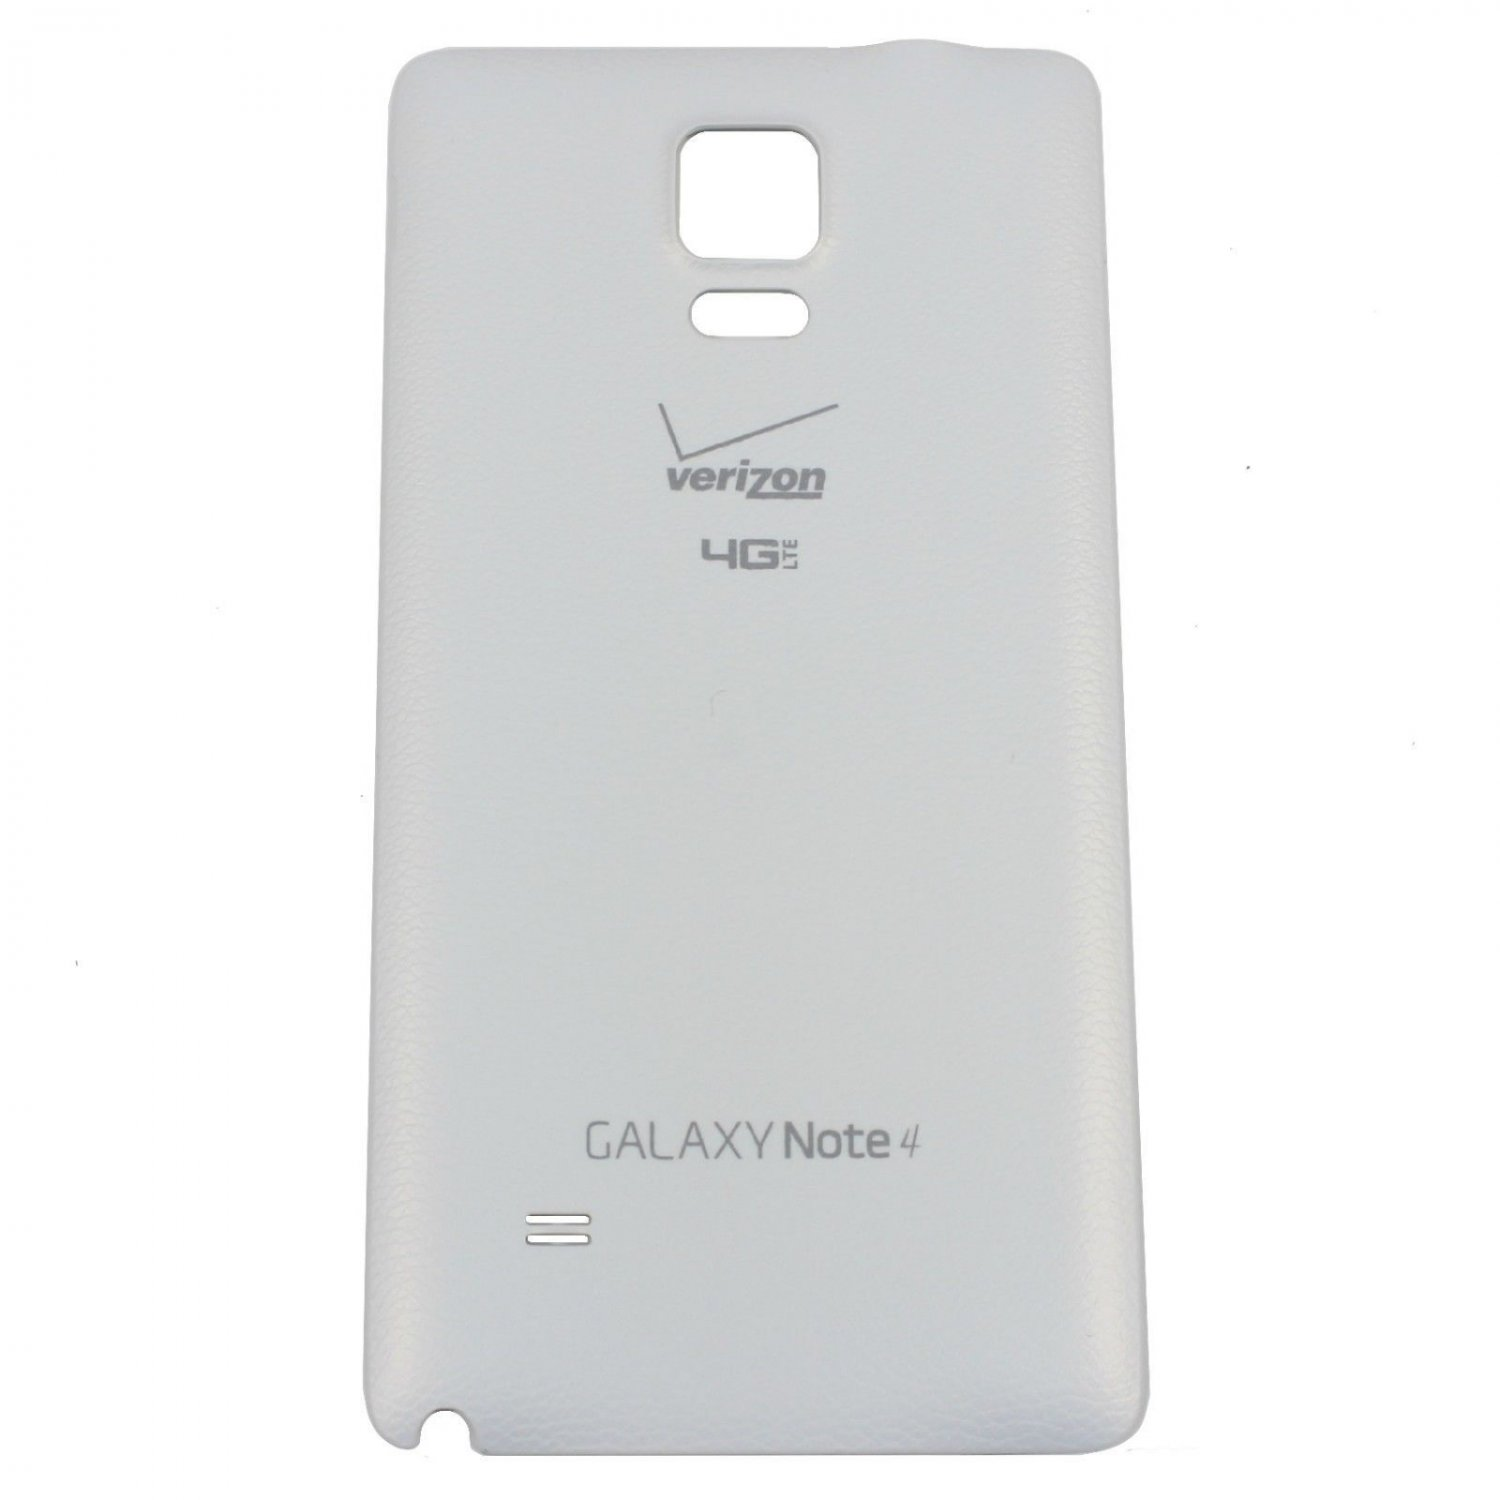 Genuine Original Samsung Galaxy Note 4 Verizon  Battery Back Door - White